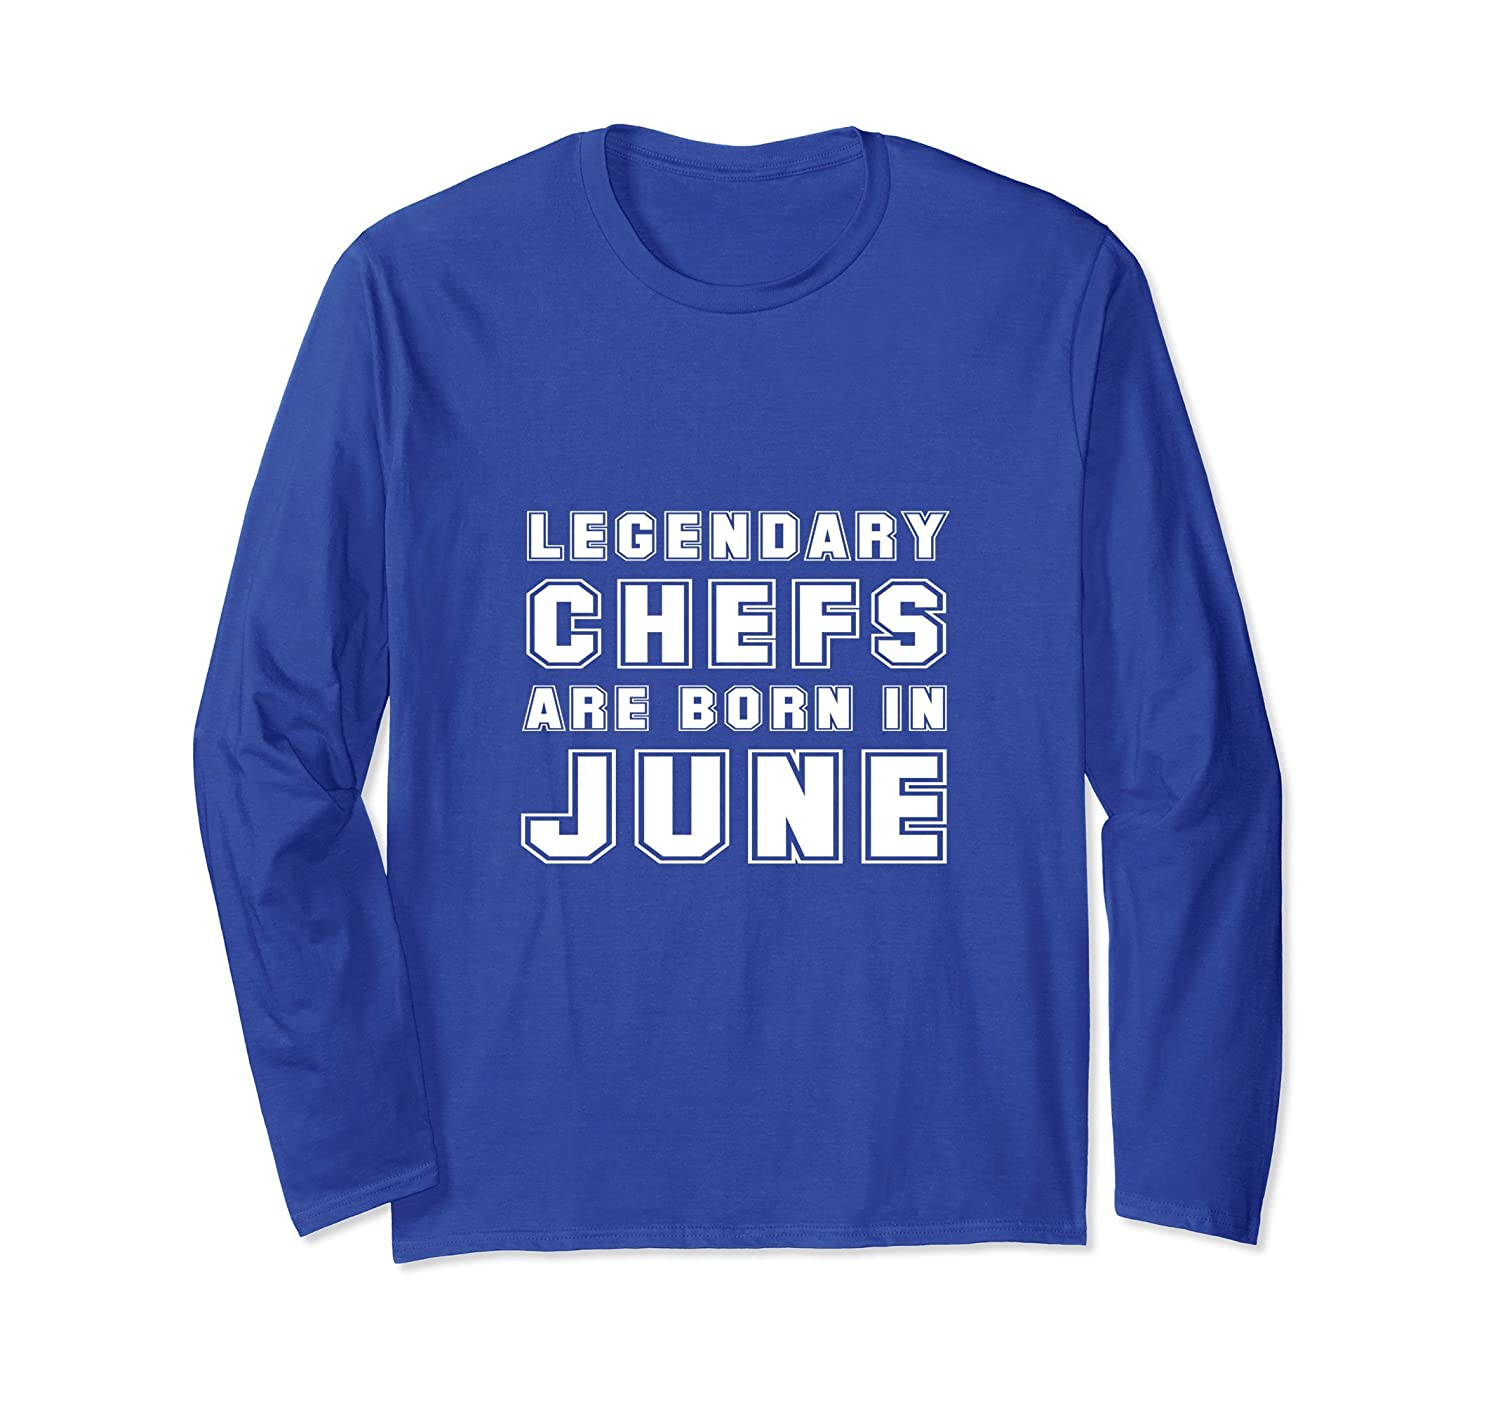 Funny Chef June Birthday Gift Present Men Women Long Sleeve Prm Paramatee